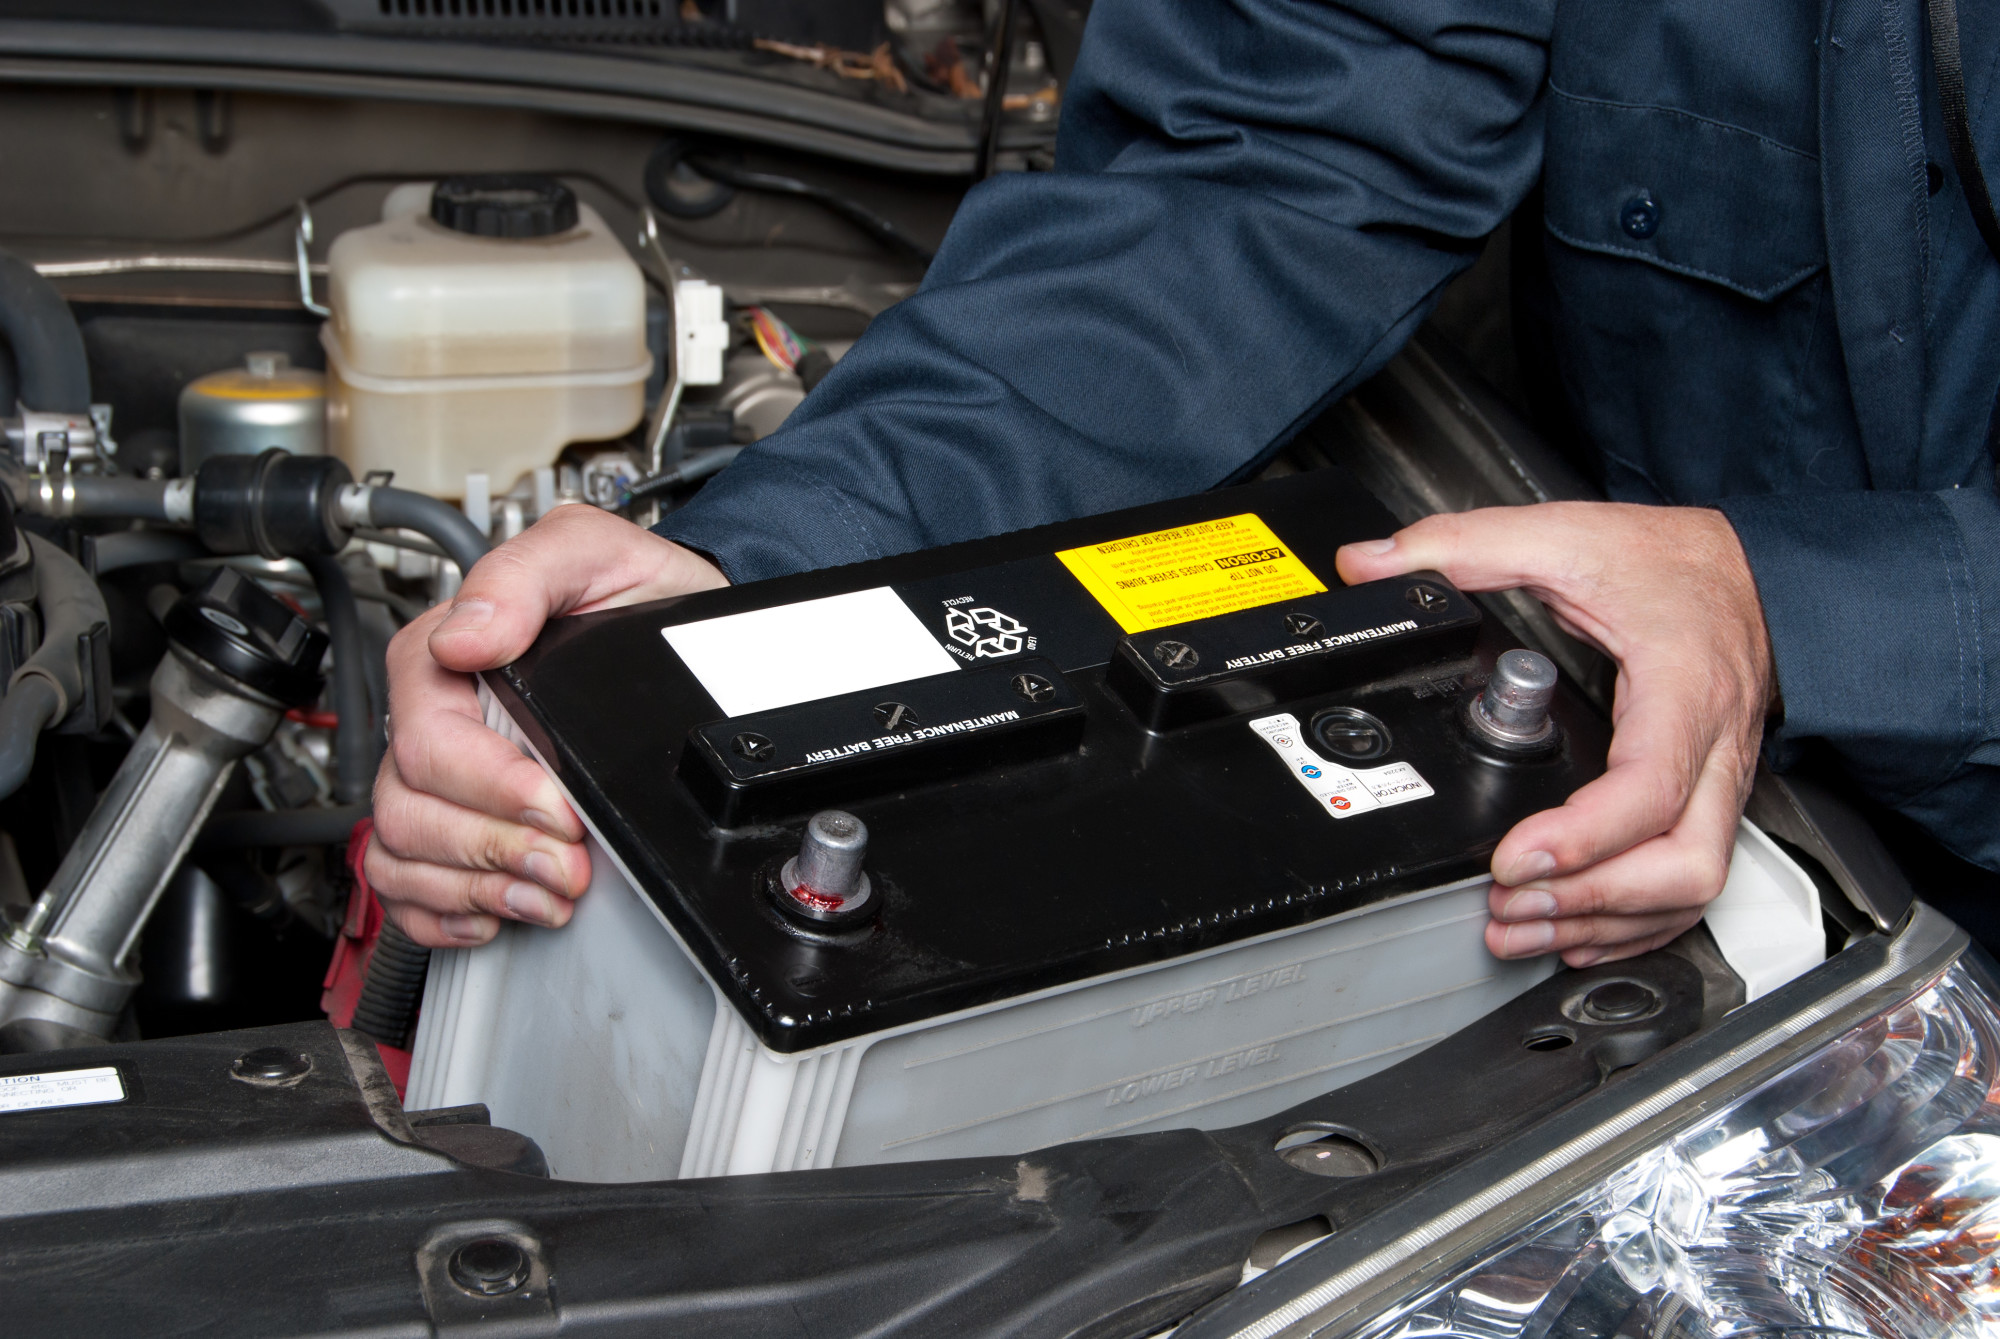 Mechanic Placing a Car Battery